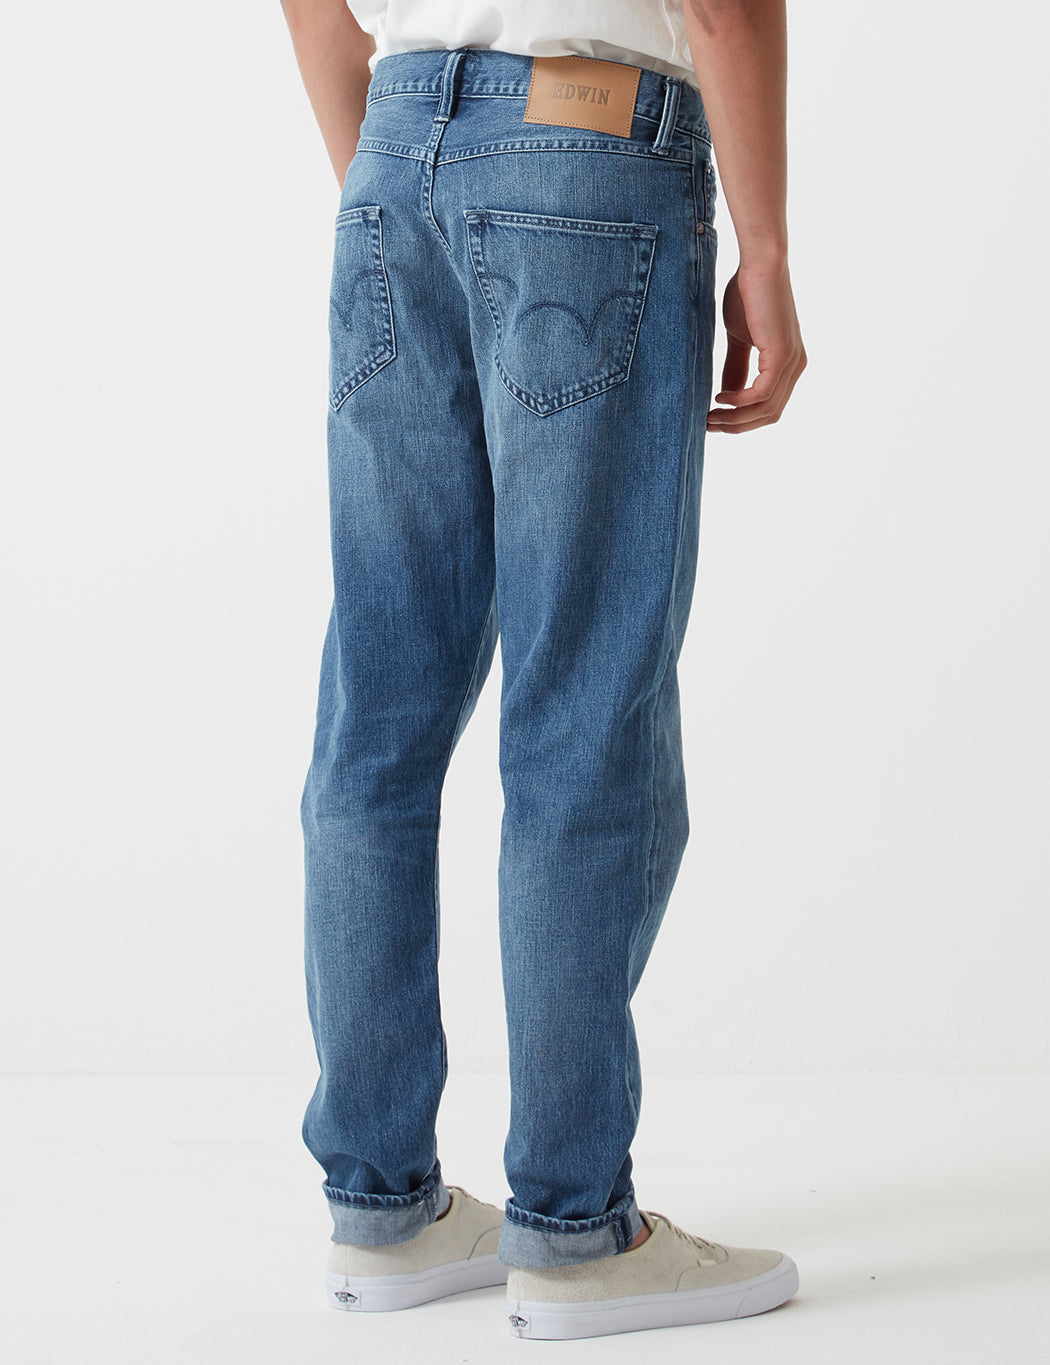 Edwin ED-45 Kingston Blue Denim Jeans 12oz (Loose Tapered) - Blue Rinsed